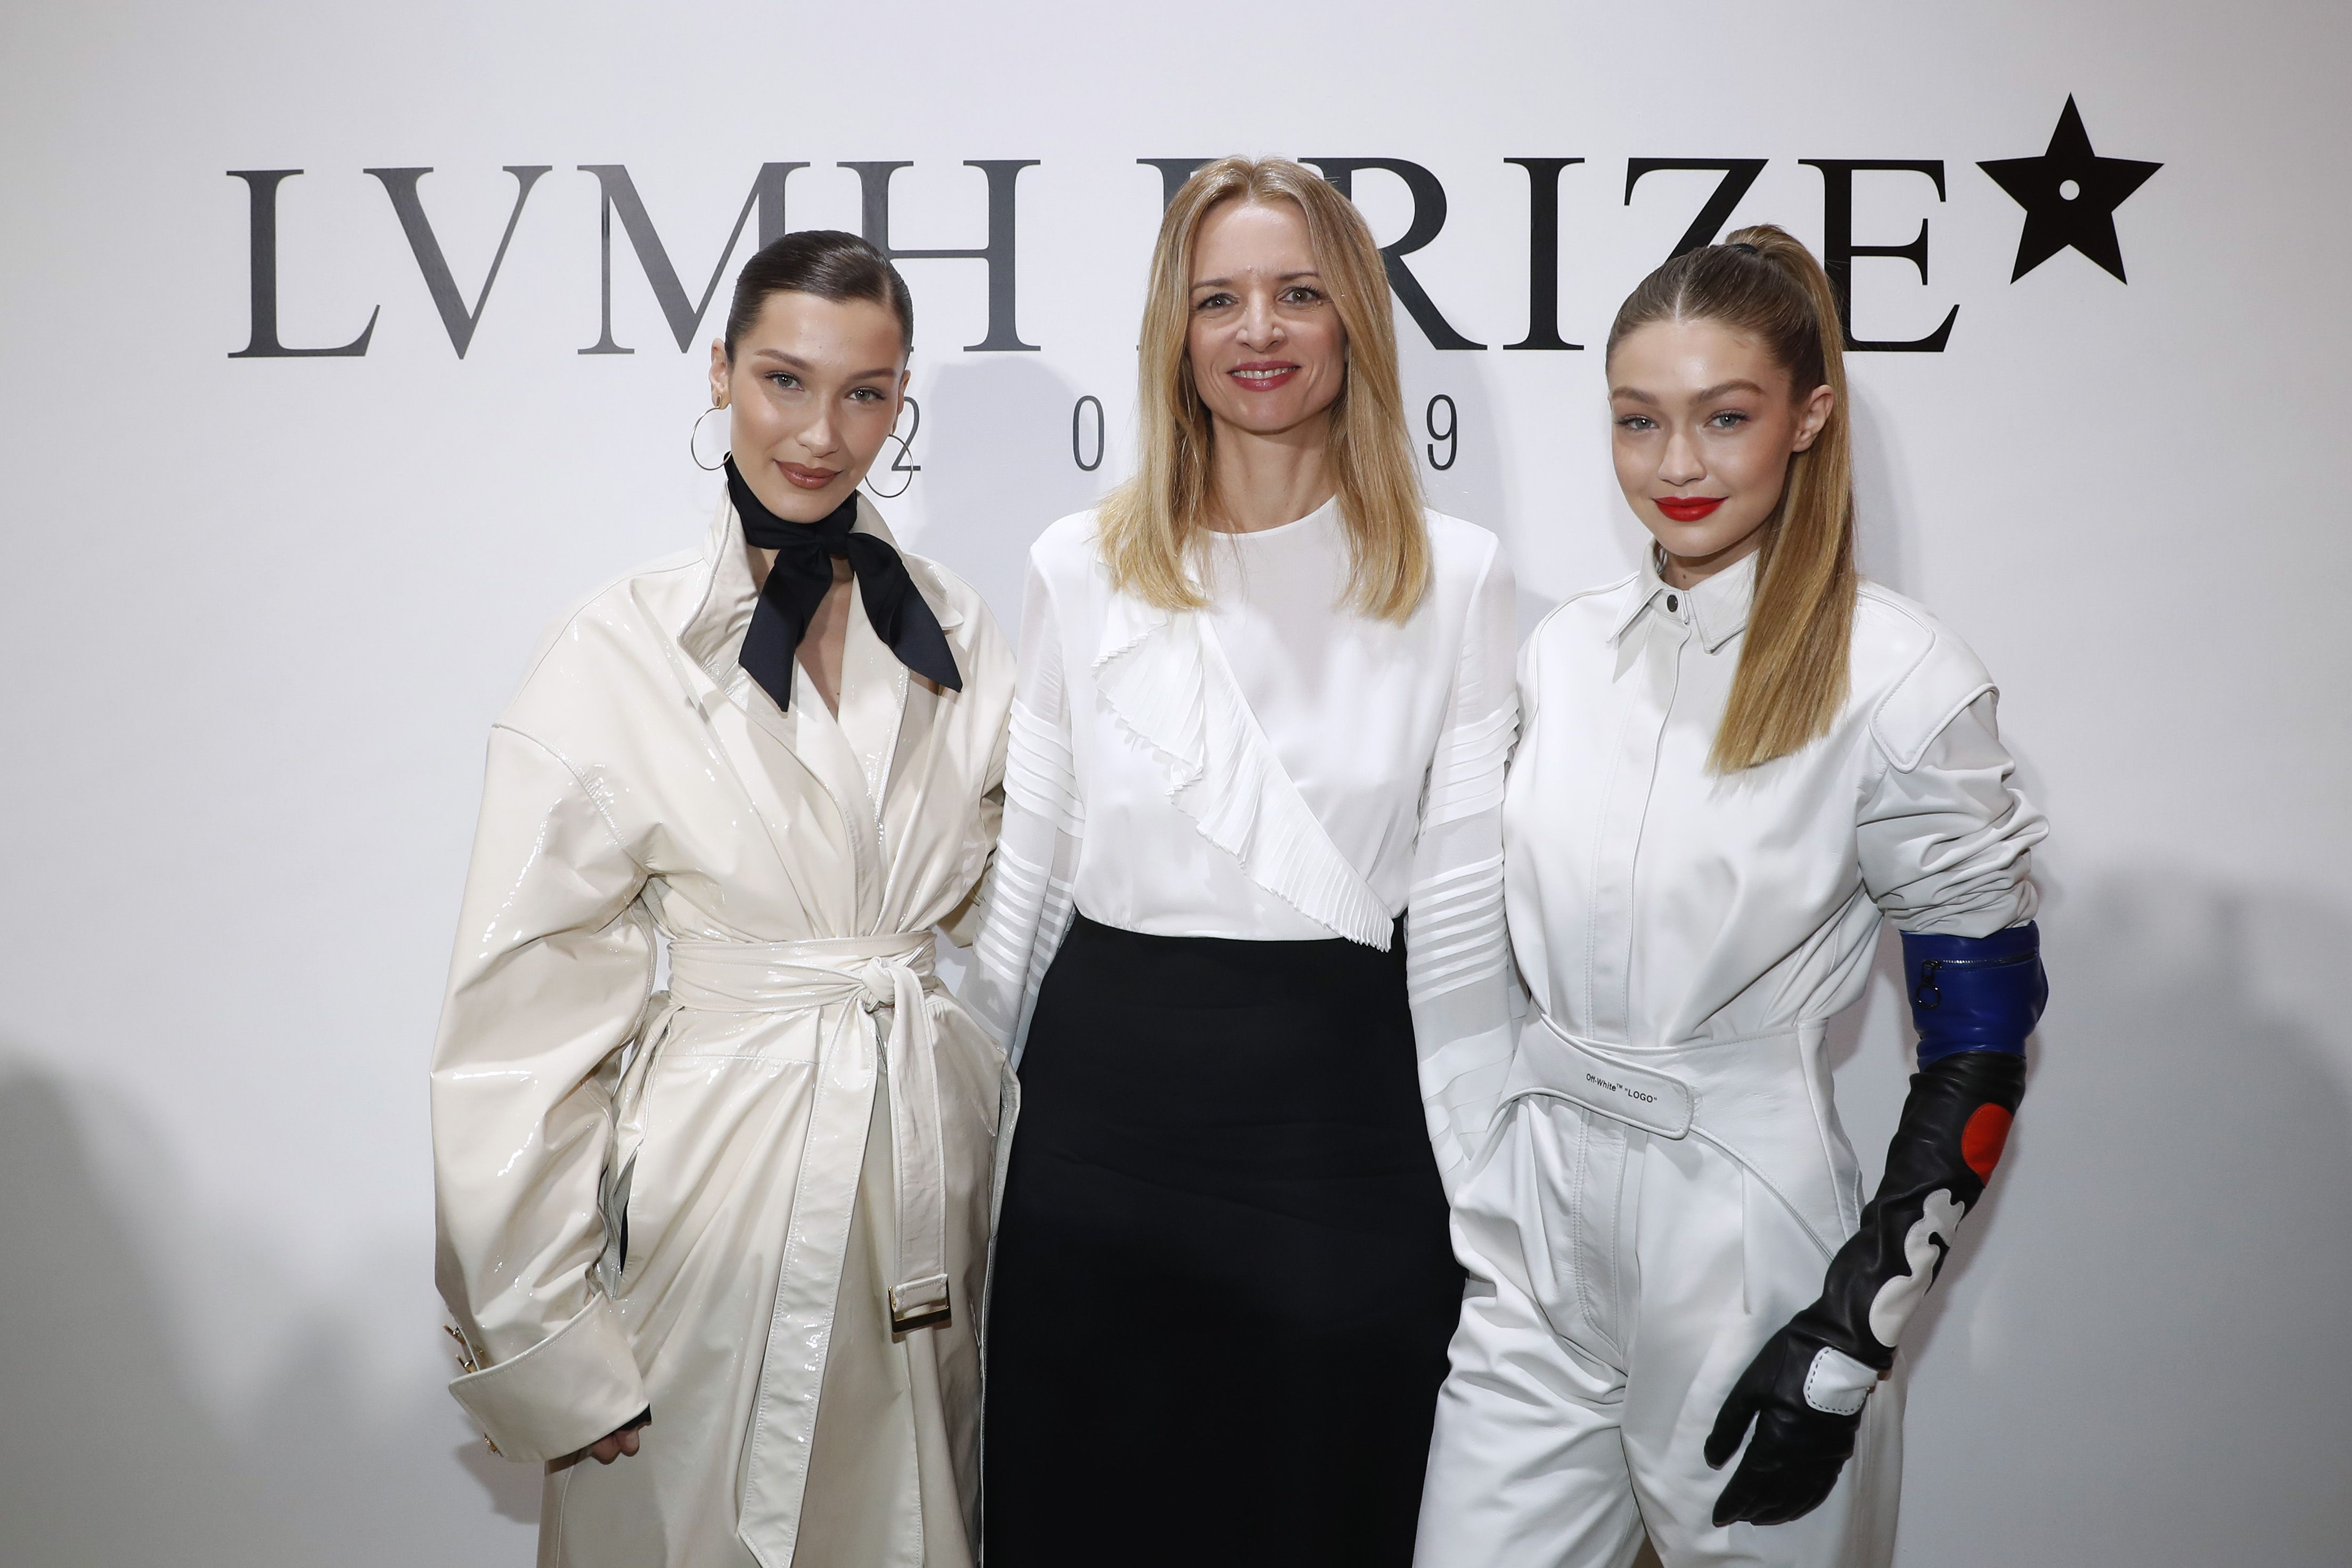 Lvmh Prize Comittee Gigi Hadid Carine Roitfeld Gigi Hadid Joins Lvmh Prize For Young Fashion Designers Panel Of Experts